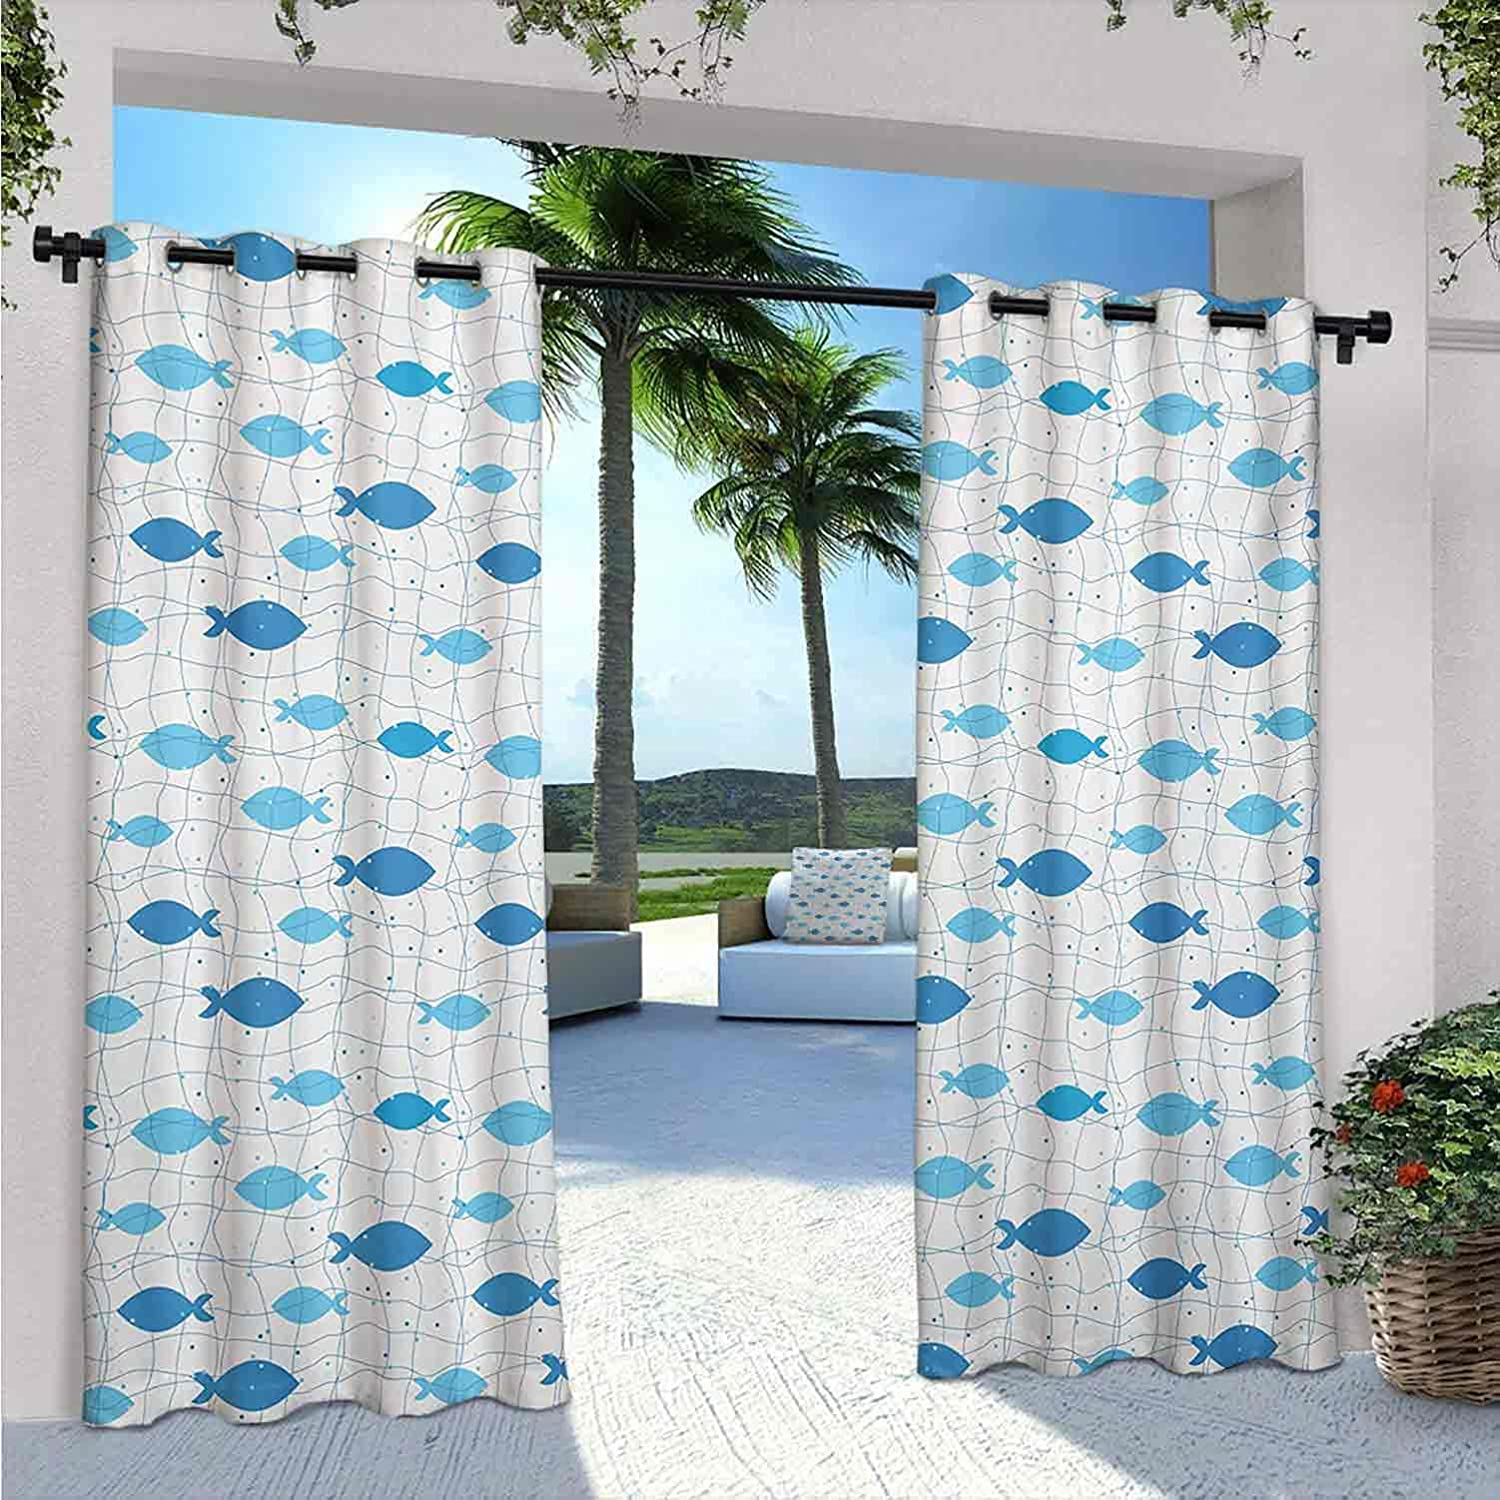 Fish Waterproof Indoor Outdoor Curtains for Limited price sale Patio Net with store